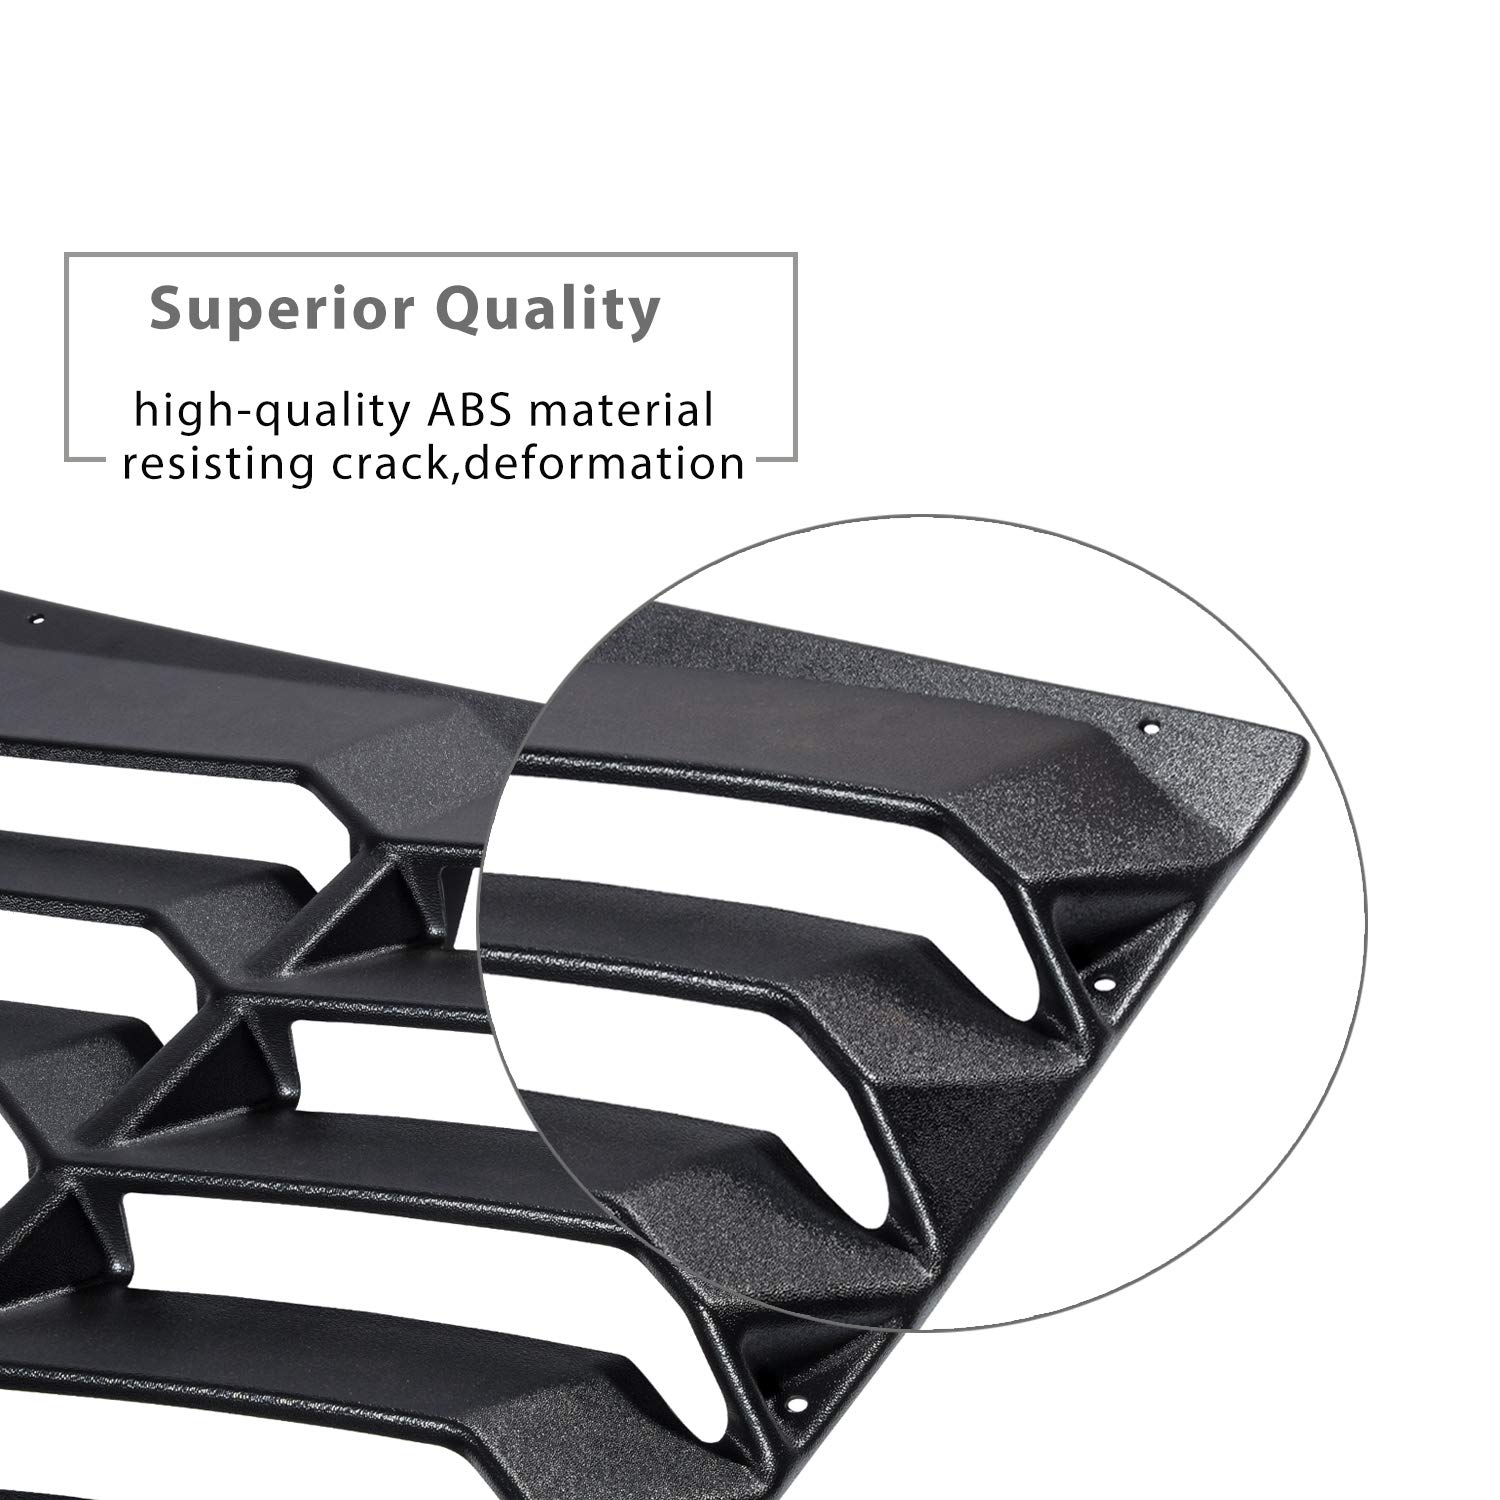 Yoursme Rear Window Louvers Matte Black Sun Shade Windshield Cover in Lambo Style for 2016 2017 2018 2019 Chevy Chevrolet Camaro by Yoursme (Image #3)